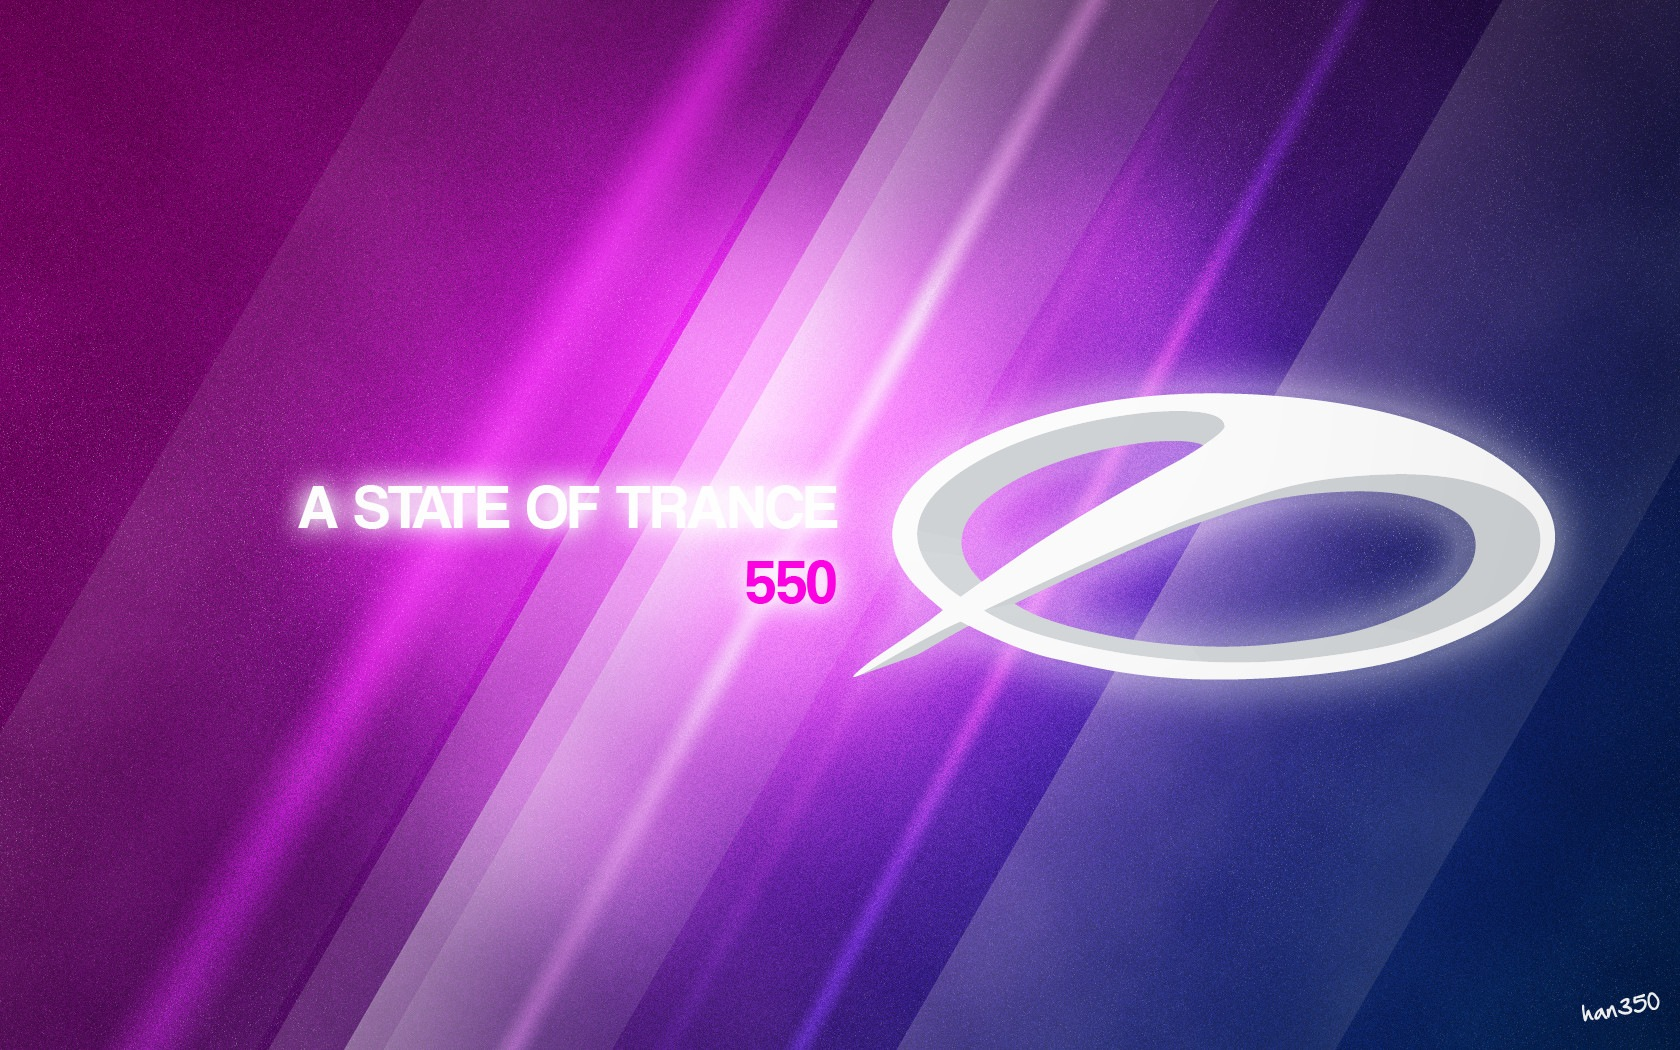 State Of Trance 550 Wallpaper A State Of Trance 550 Wallpaper Dj 1680x1050